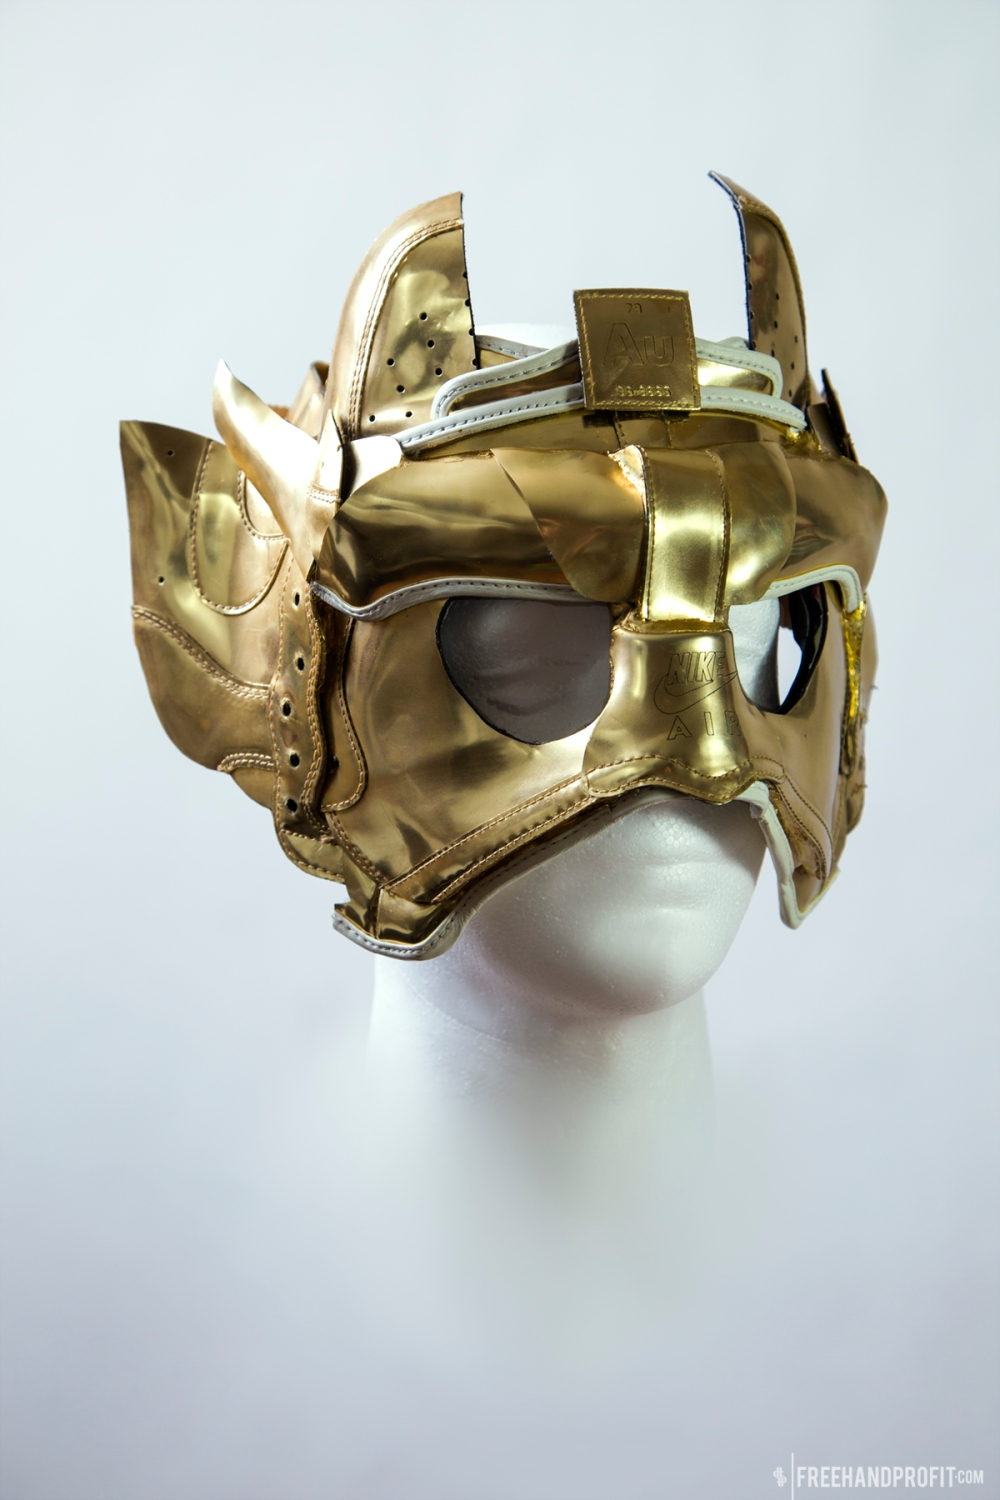 Liquid Gold AF1 Masks by Freehand Profit